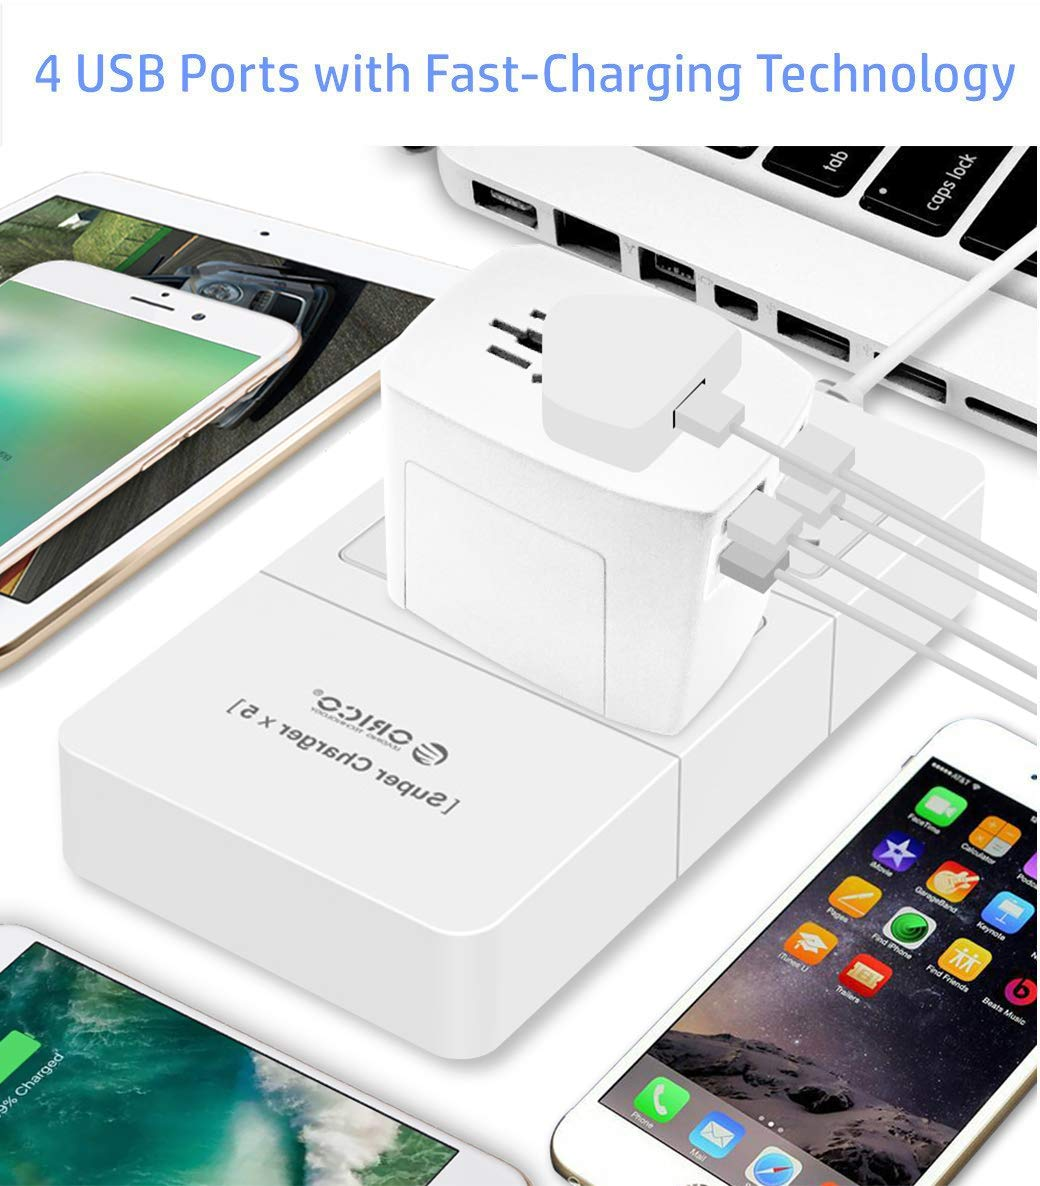 Travel Adapter, 2000W International Power Adapter, All in One Universal Power Adapter with 4 USB 3.0 Ports, for UK, EU, AU, US, Over 200 Countries ...